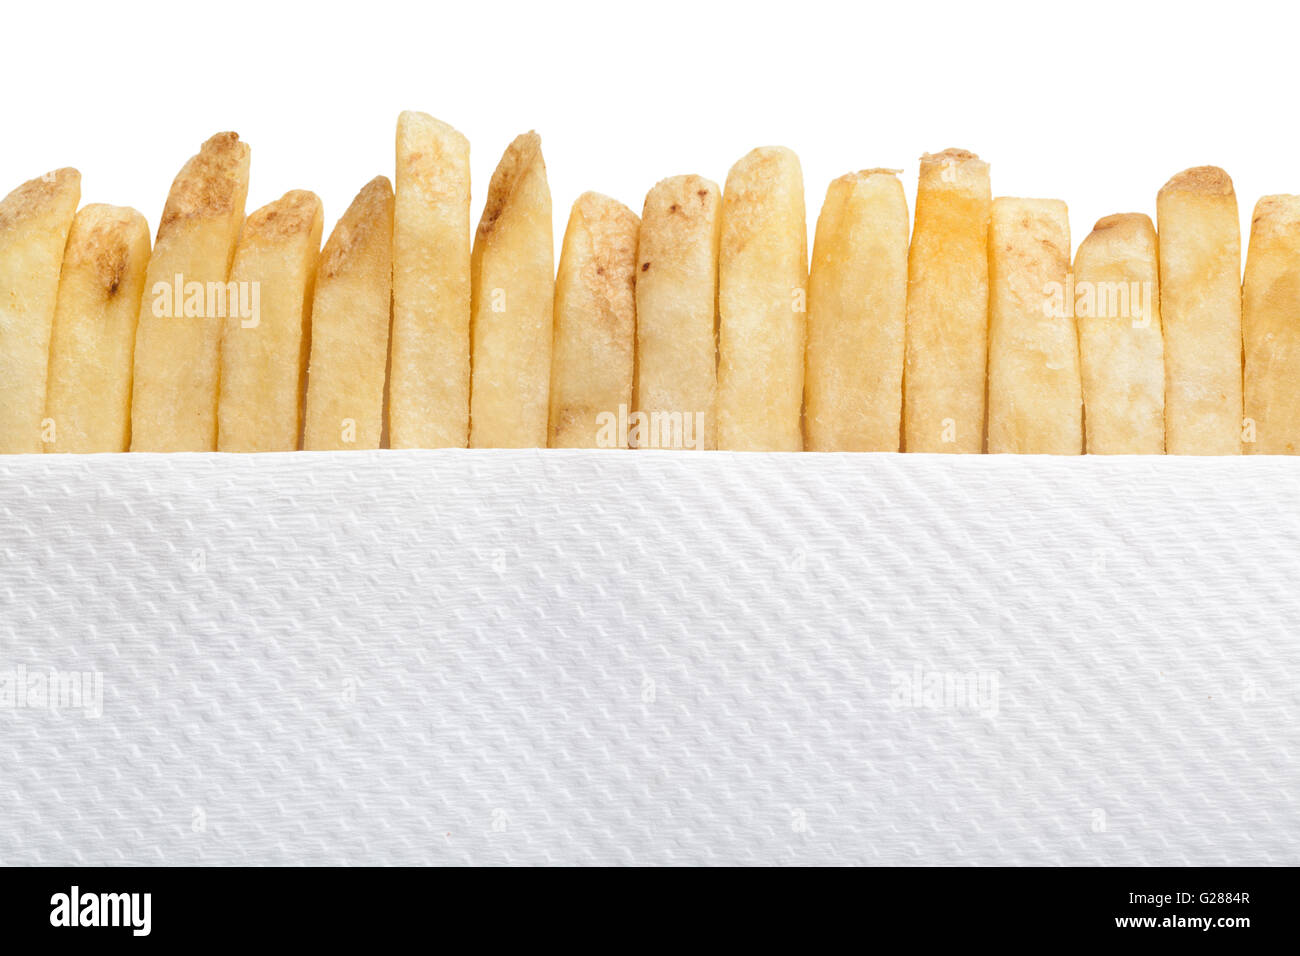 Row of french fries and paper napkin - Stock Image